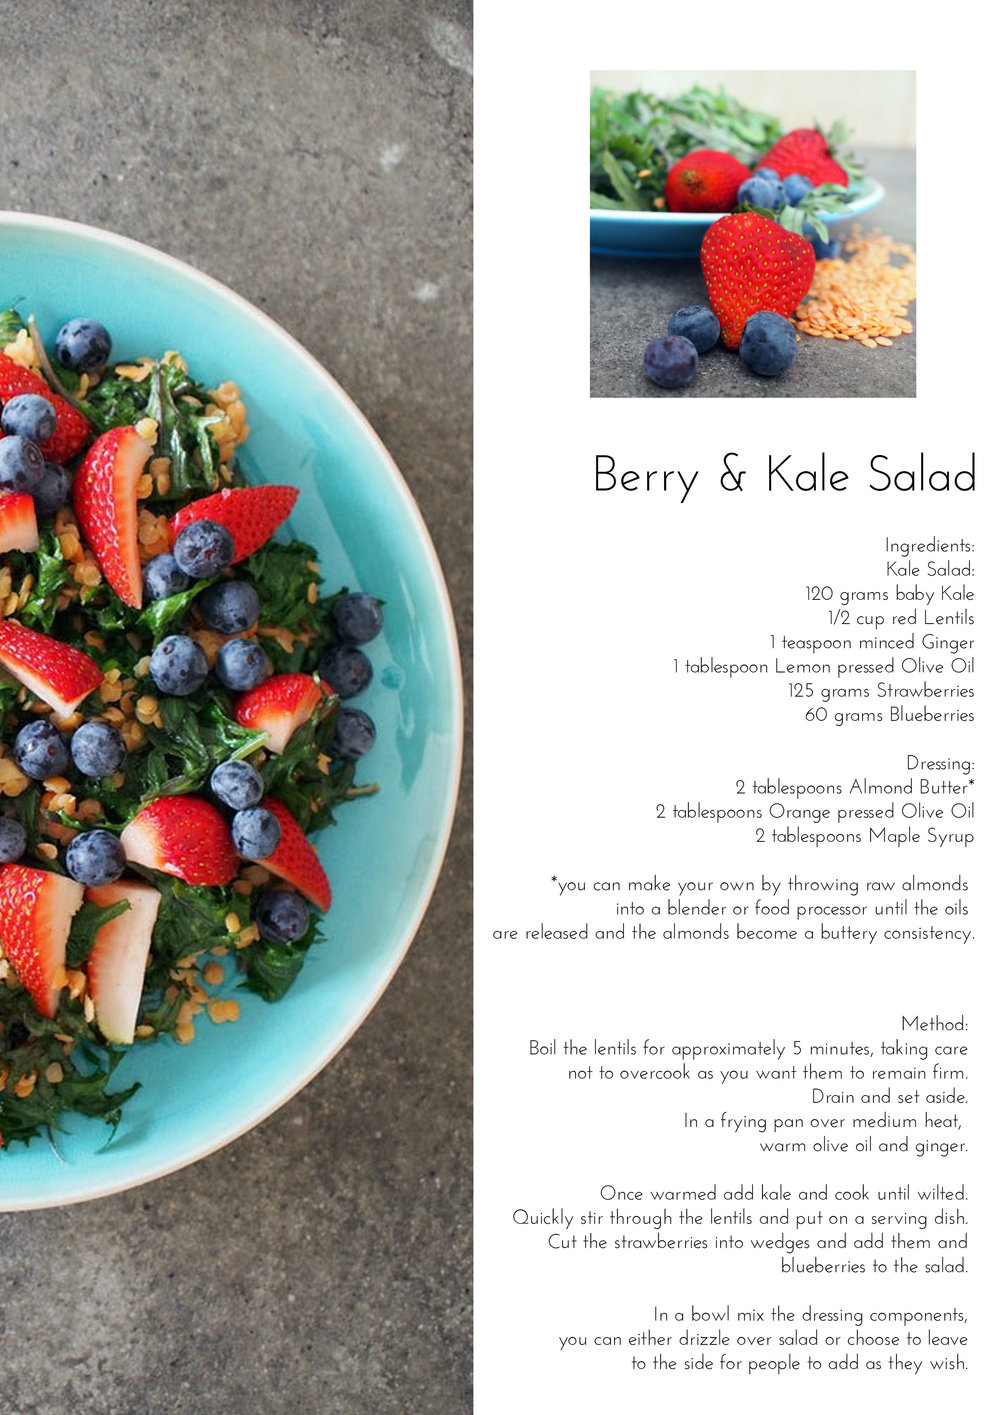 Berry-&-Kale-Salad.jpg